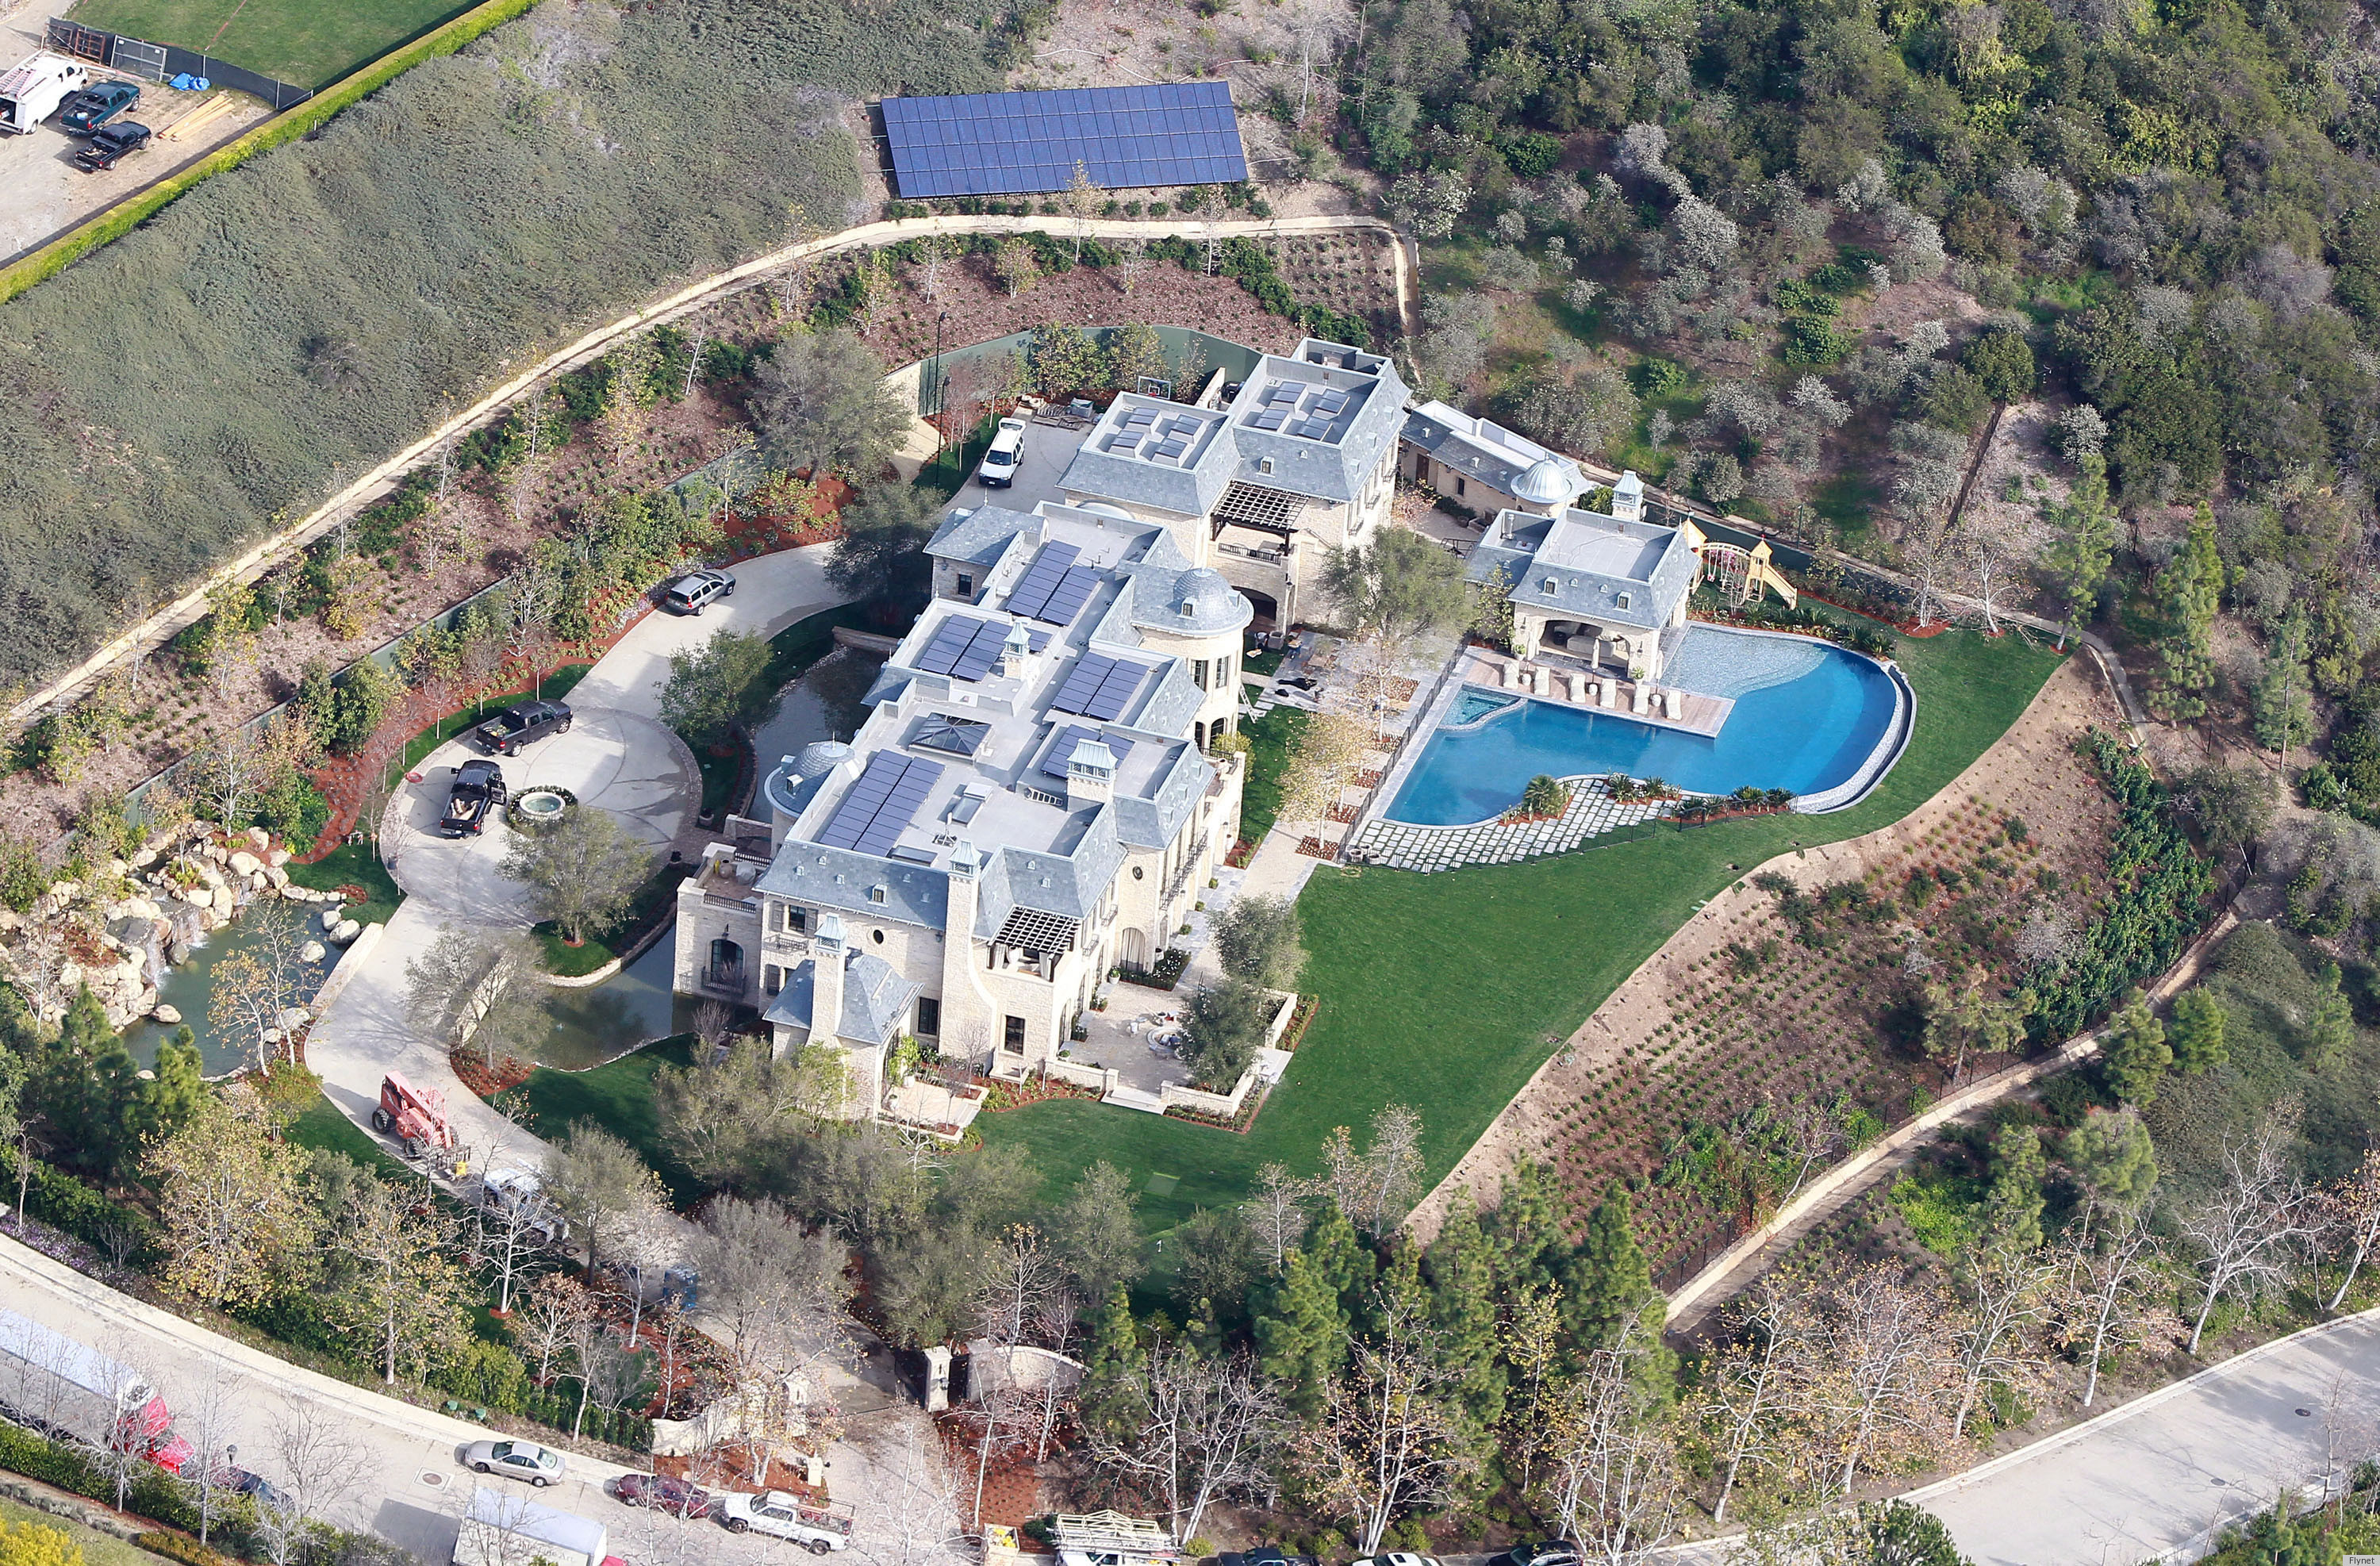 Gisele tom brady 39 s new house in california is bigger Tom brady gisele bundchen brookline house